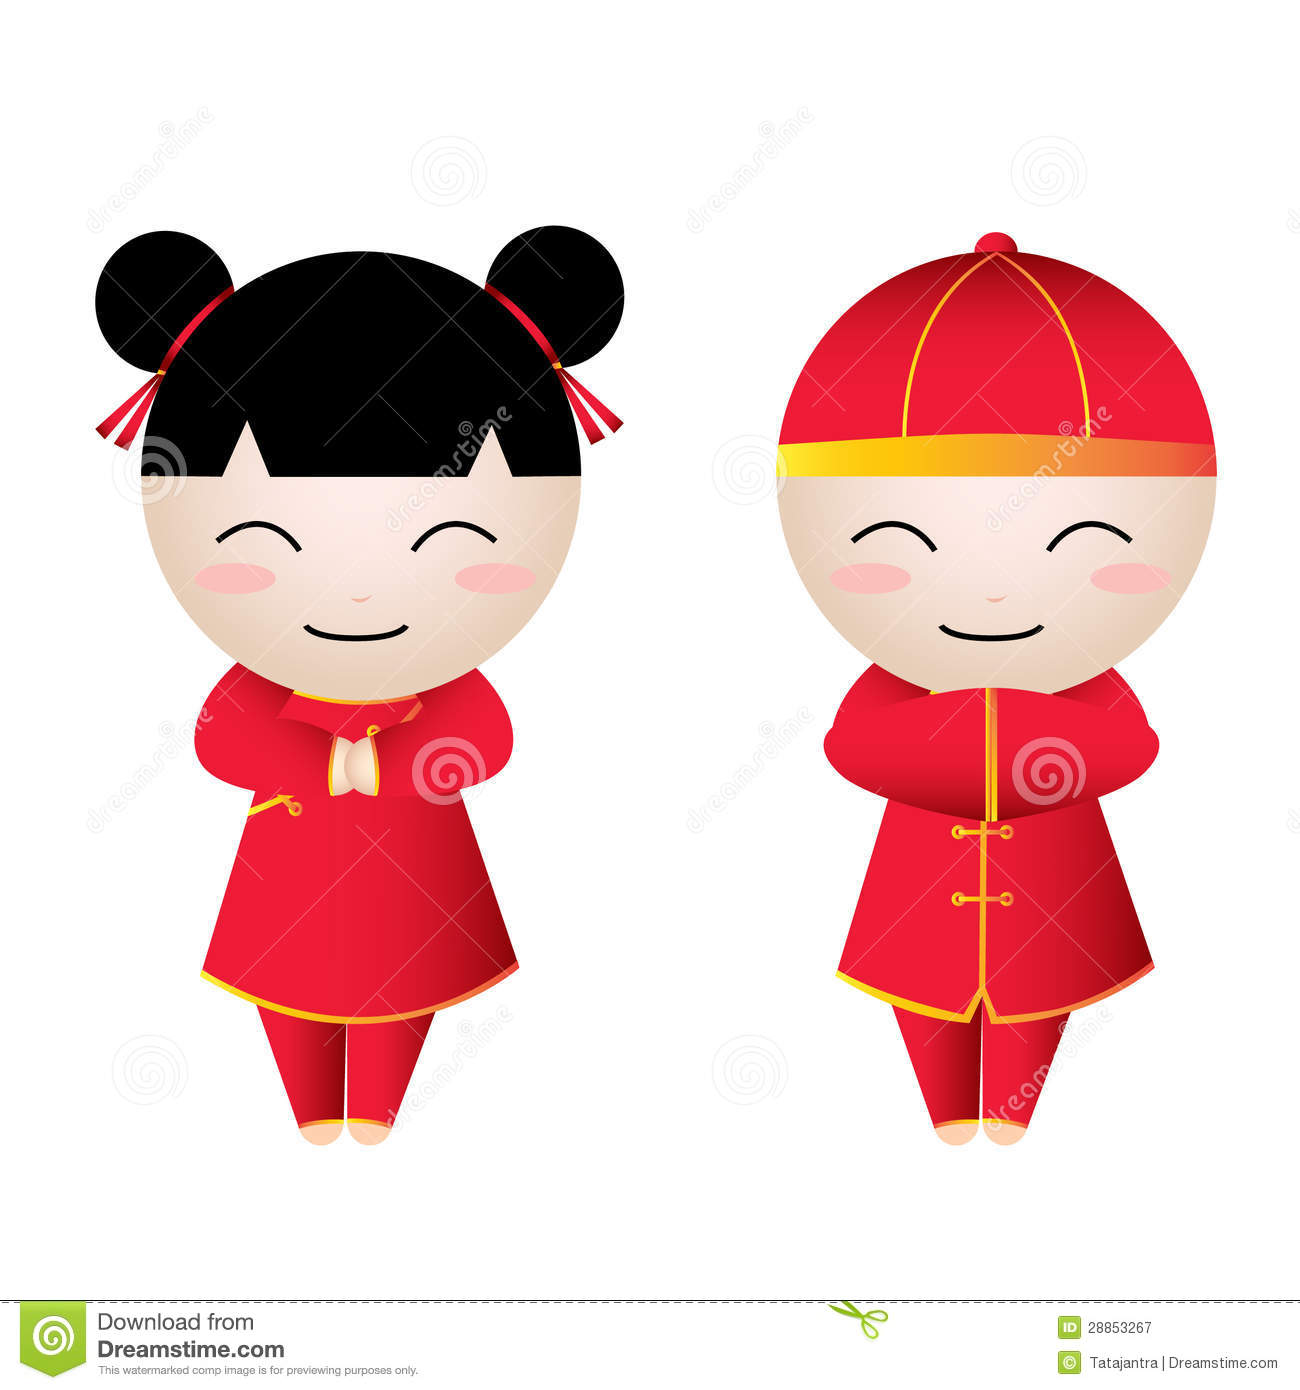 Chinese Girl Cartoon Clipart - Clipart Kid